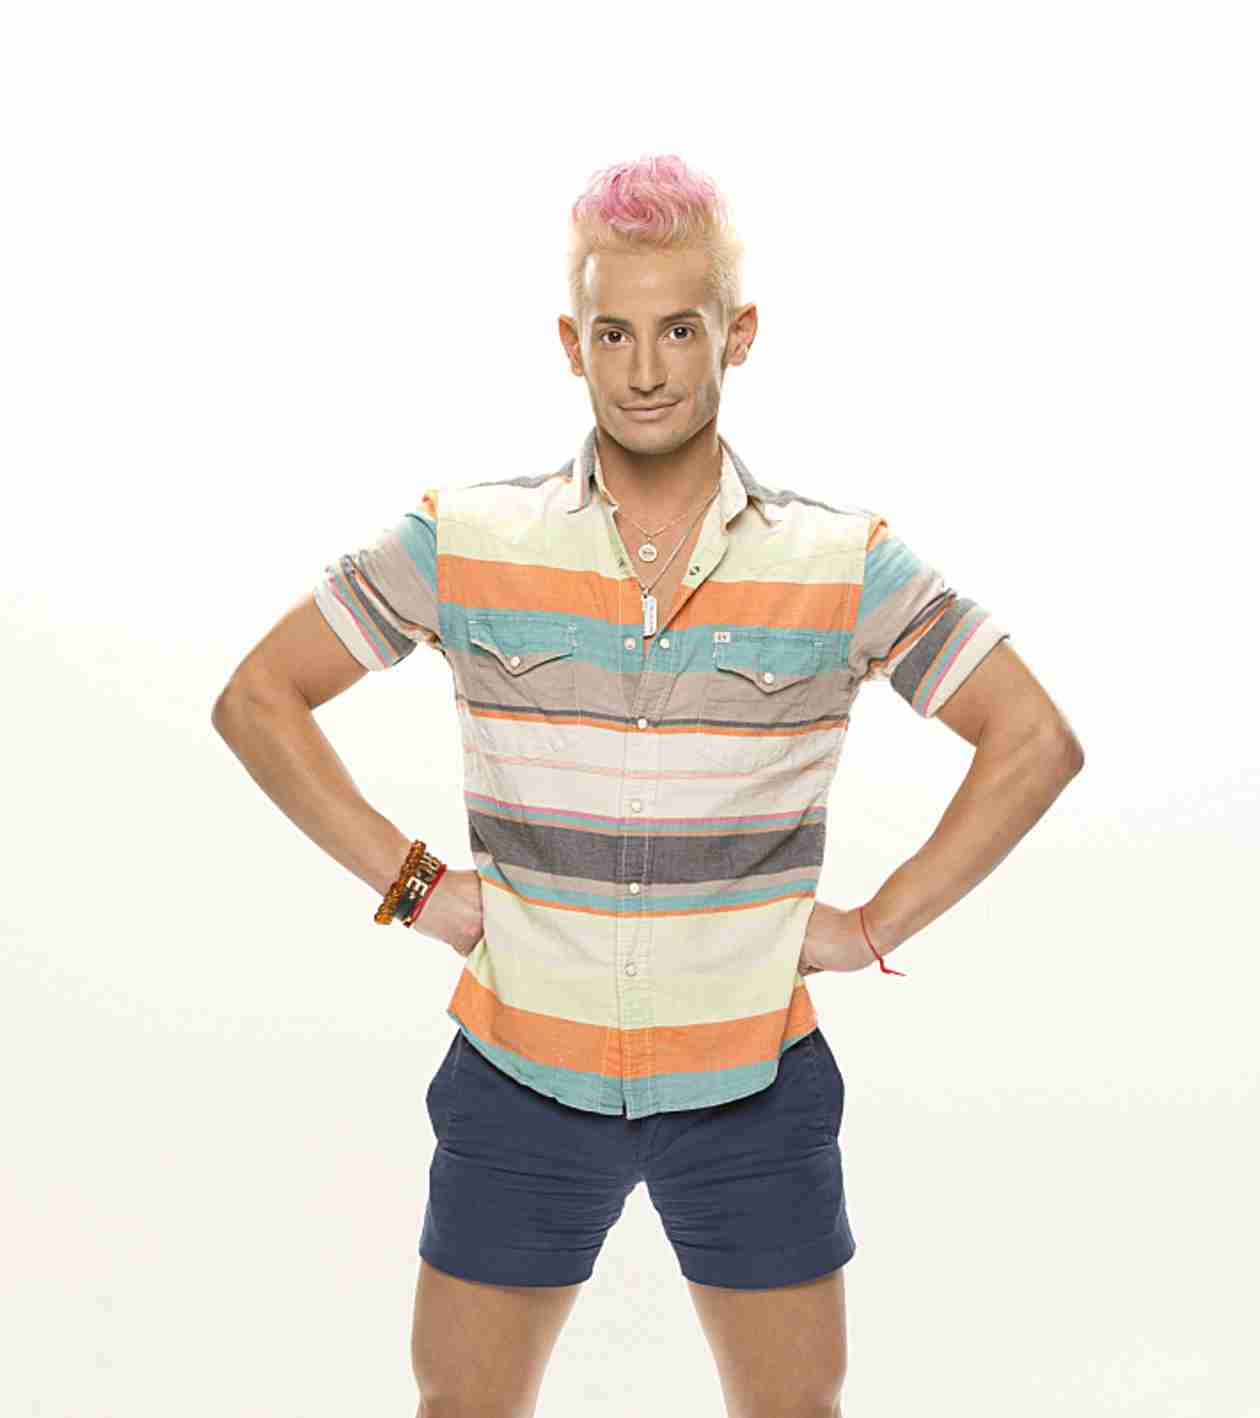 Big Brother 16: Frankie Grande Reveals He's Ariana Grande's Brother! (VIDEO)